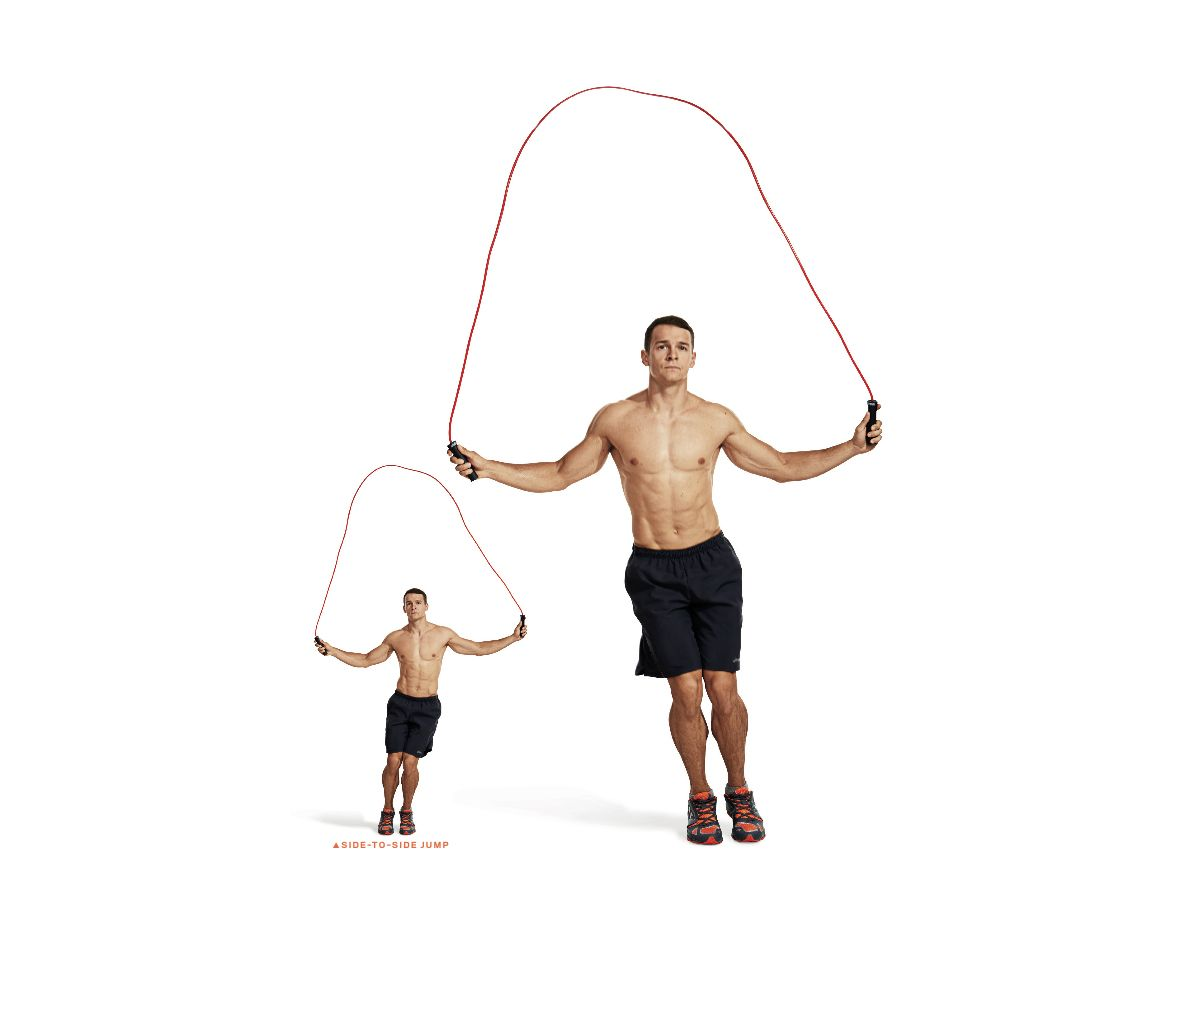 Improve Conditioning And Foot S D With This Fat Burning Jump Rope Circuit Nccpt Nccpttransformme